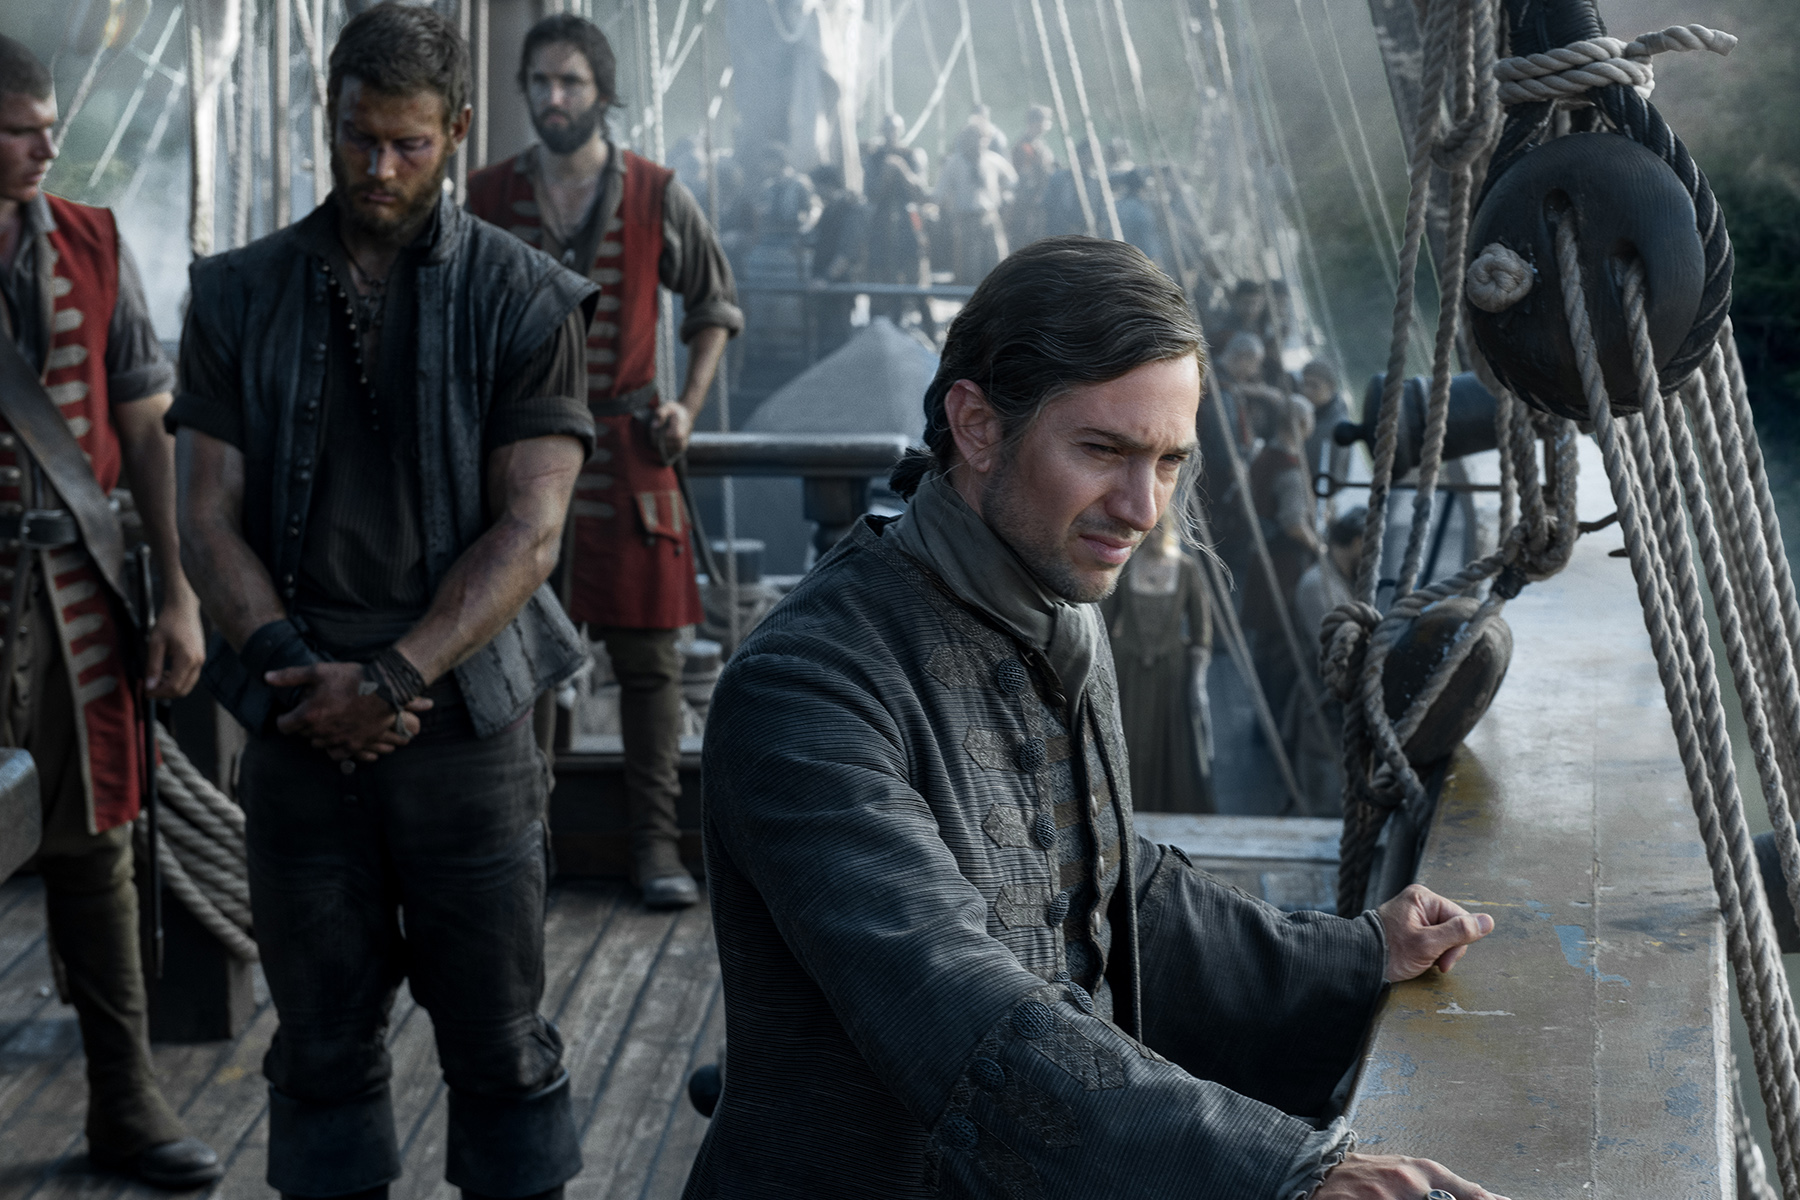 Who Will Prevail in Next Week's Episode of Black Sails?